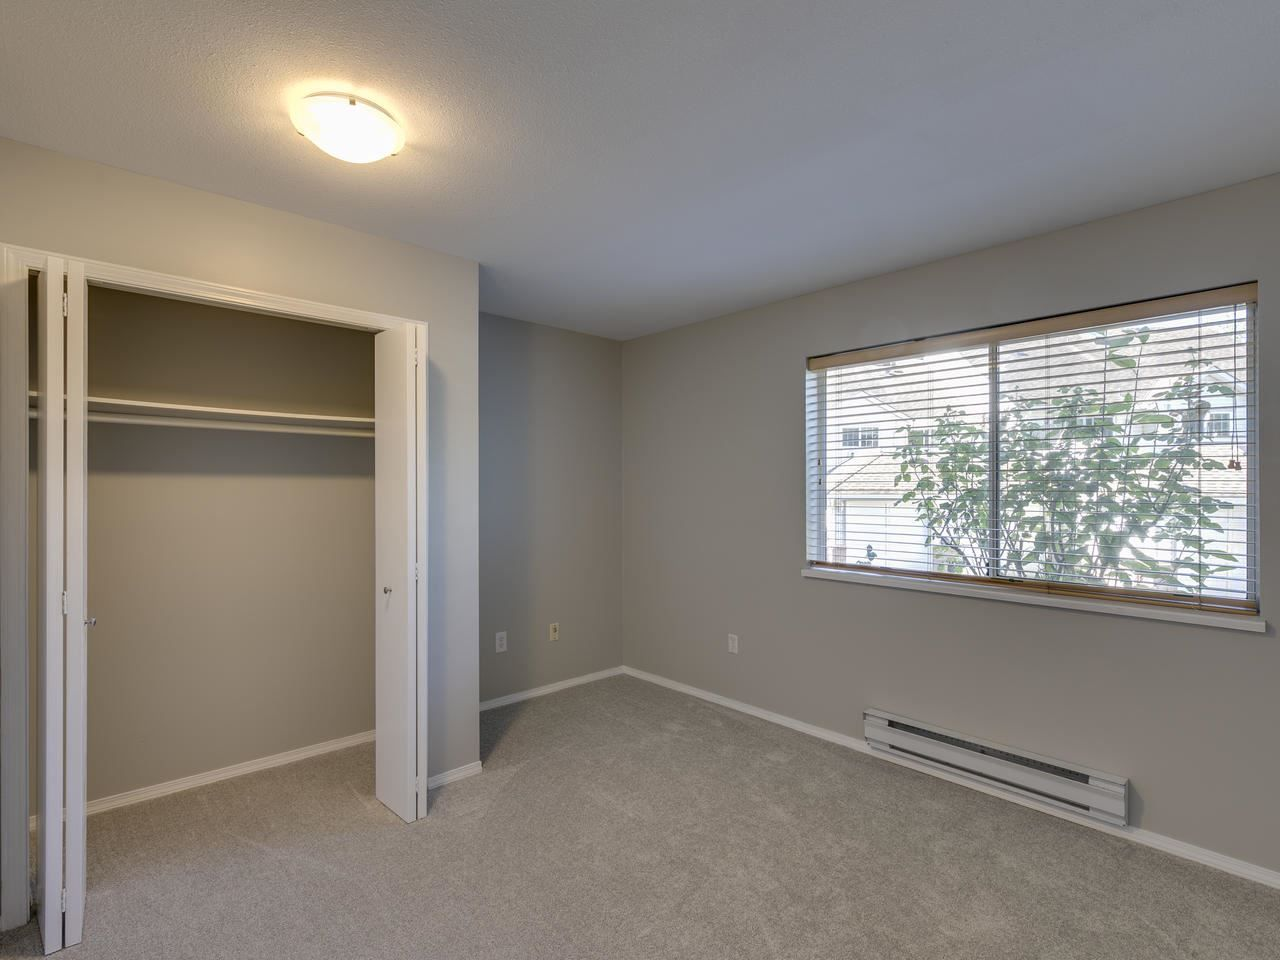 """Photo 30: Photos: 127 22555 116 Avenue in Maple Ridge: East Central Townhouse for sale in """"HILLSIDE"""" : MLS®# R2493046"""